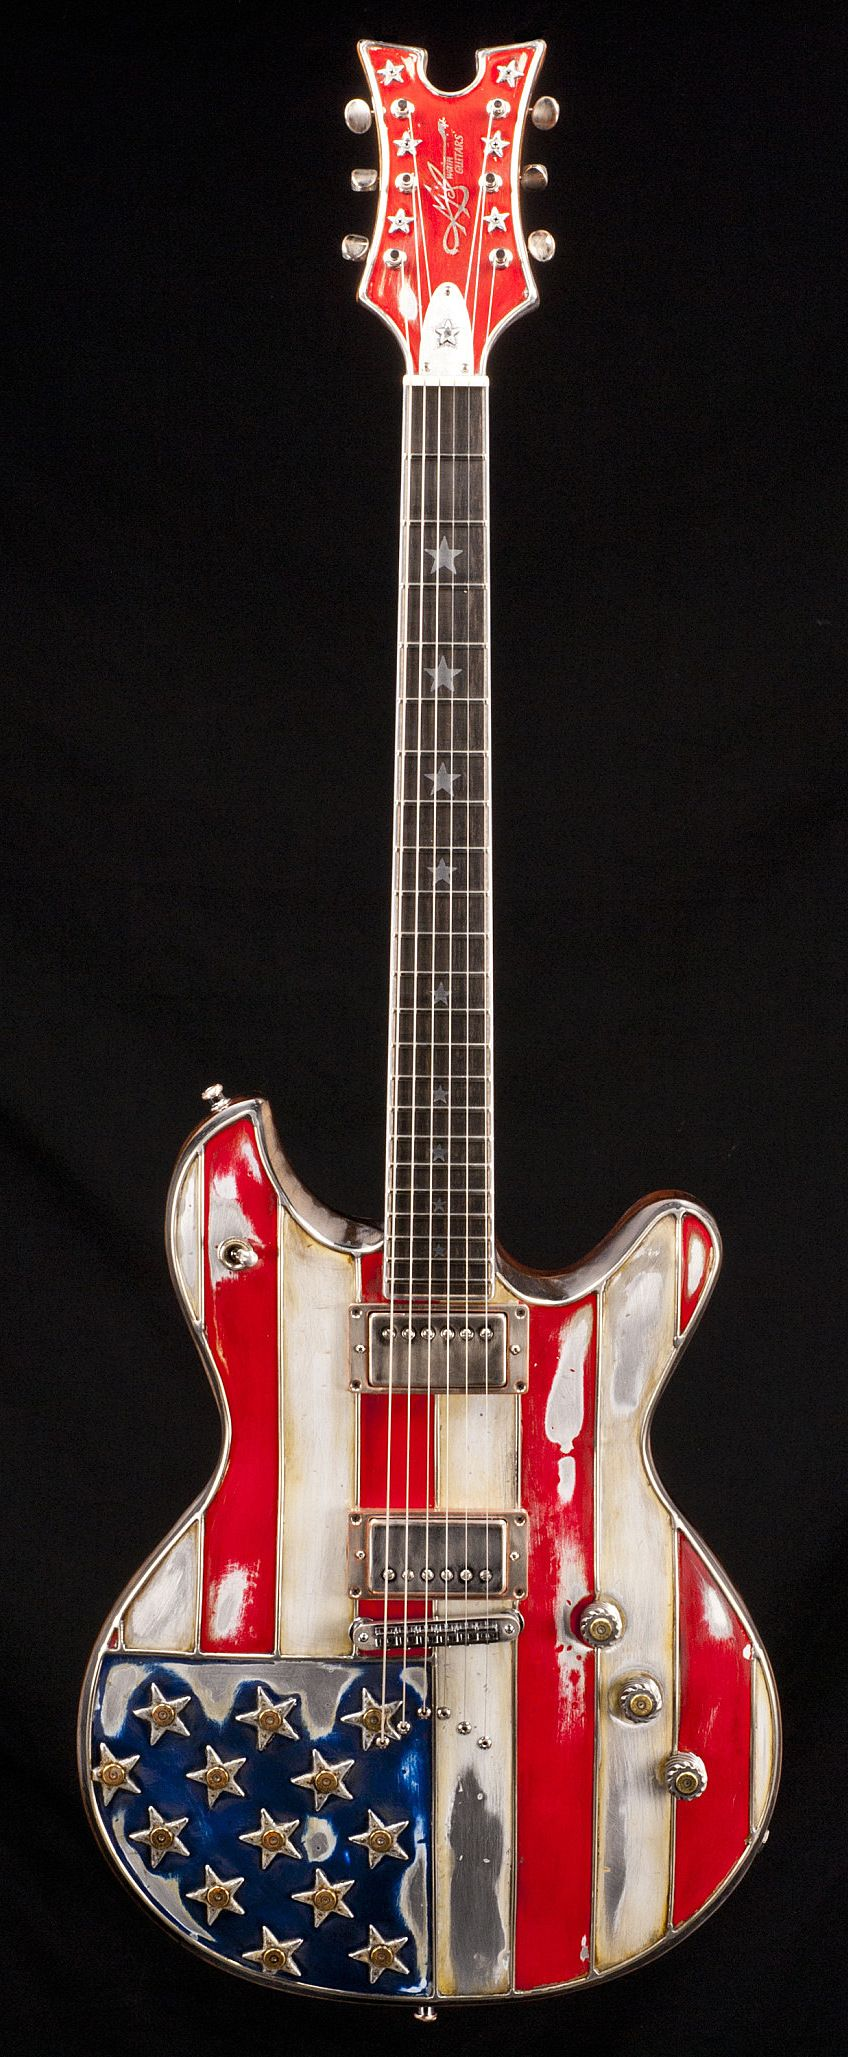 mcswain red white bullets american national pride shown in this electric guitar designed to. Black Bedroom Furniture Sets. Home Design Ideas